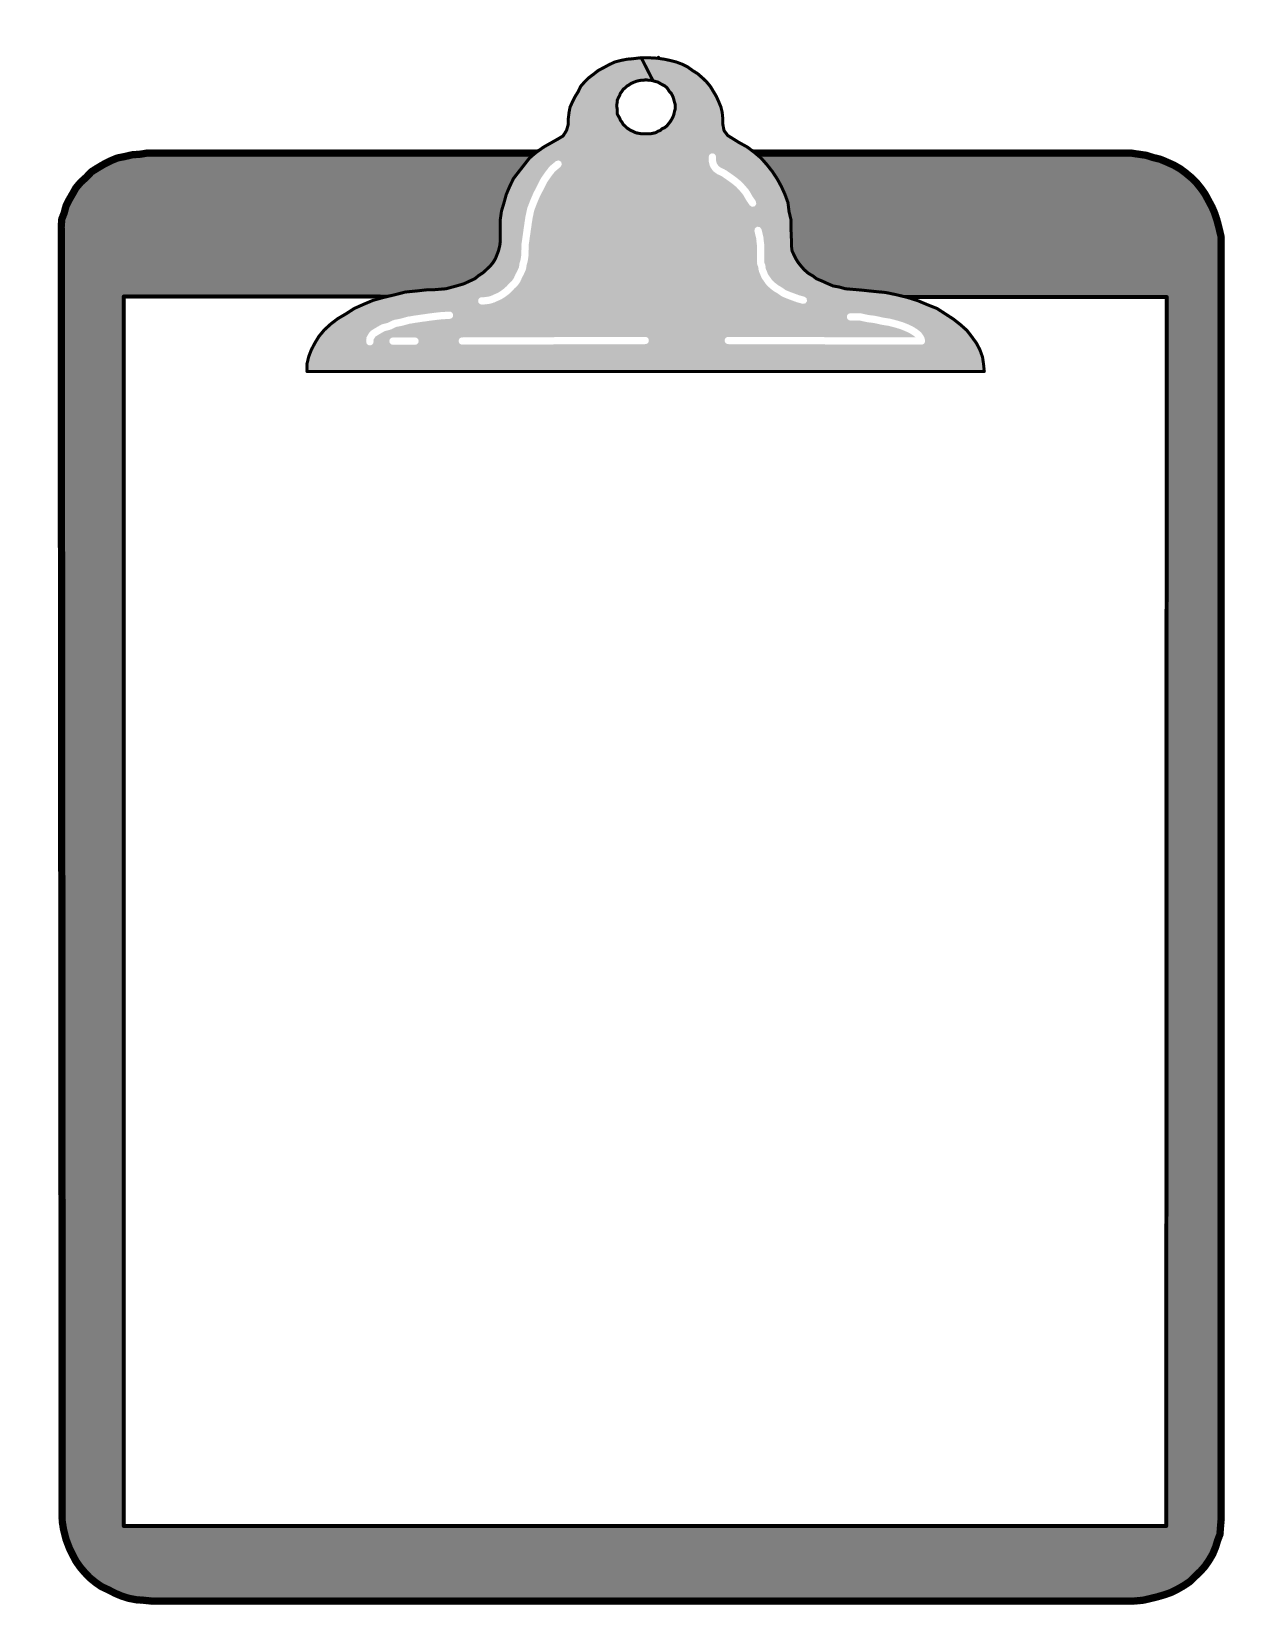 Clipboard boardmember black and white clipart kid